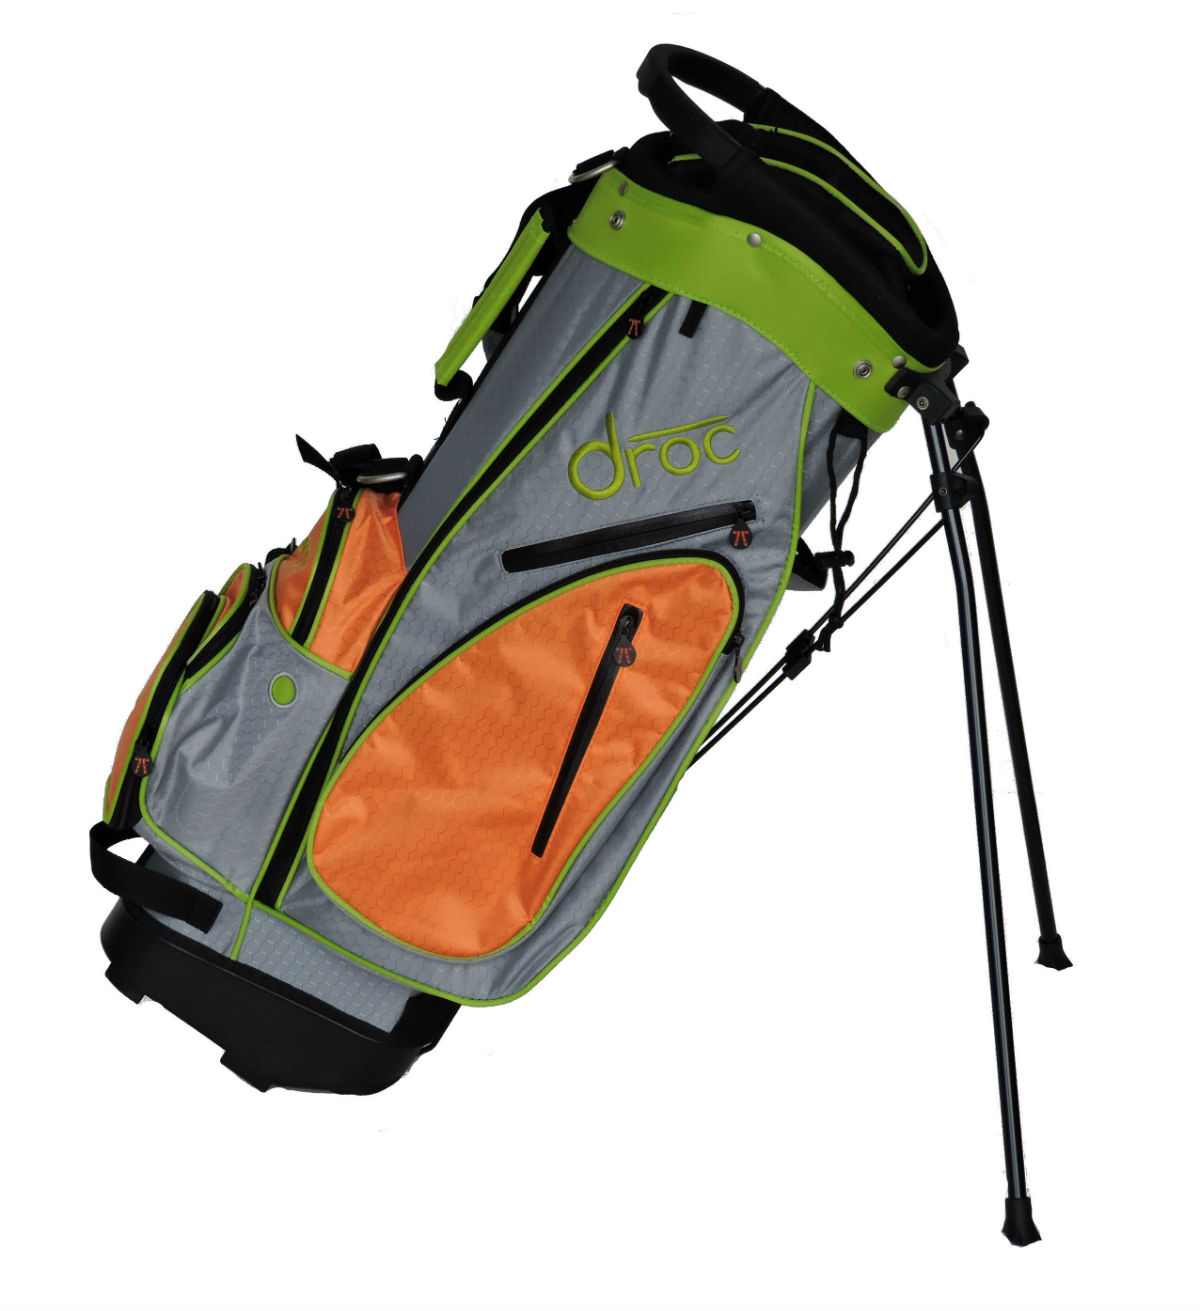 Droc - Dimond Golf Bag Age 10 - 14 (Orange_Lime, 30)